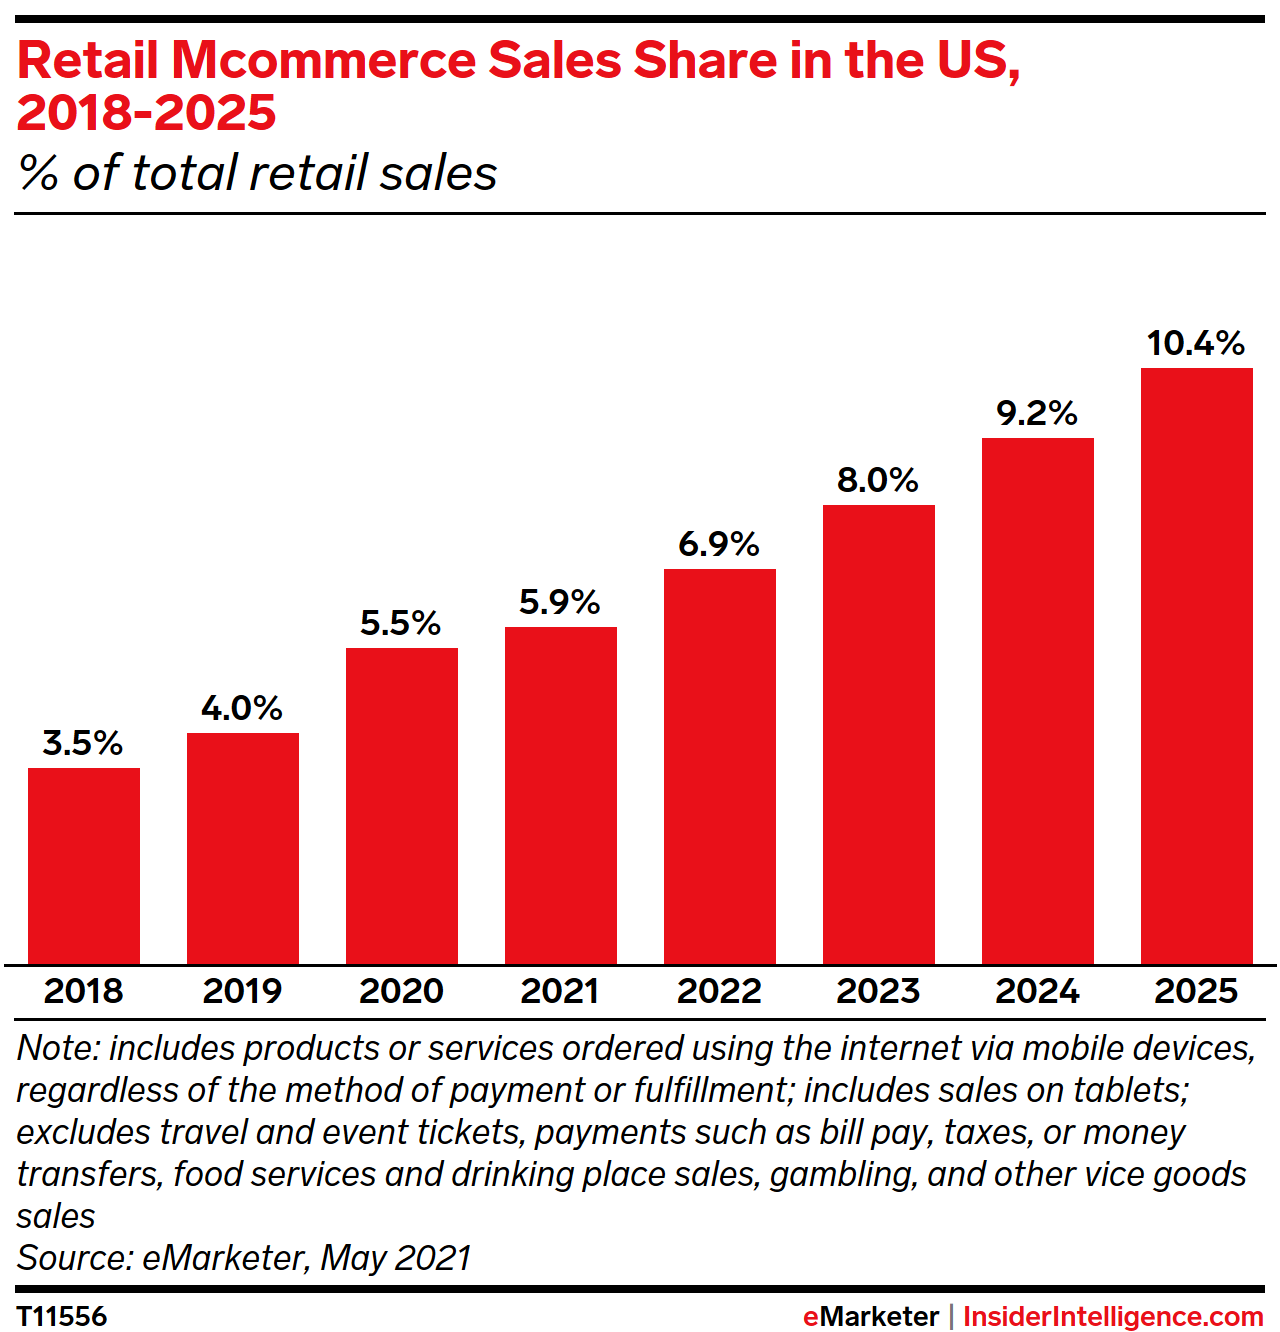 Retail Mcommerce Sales Share in the US, 2018-2025 (% of total retail sales)